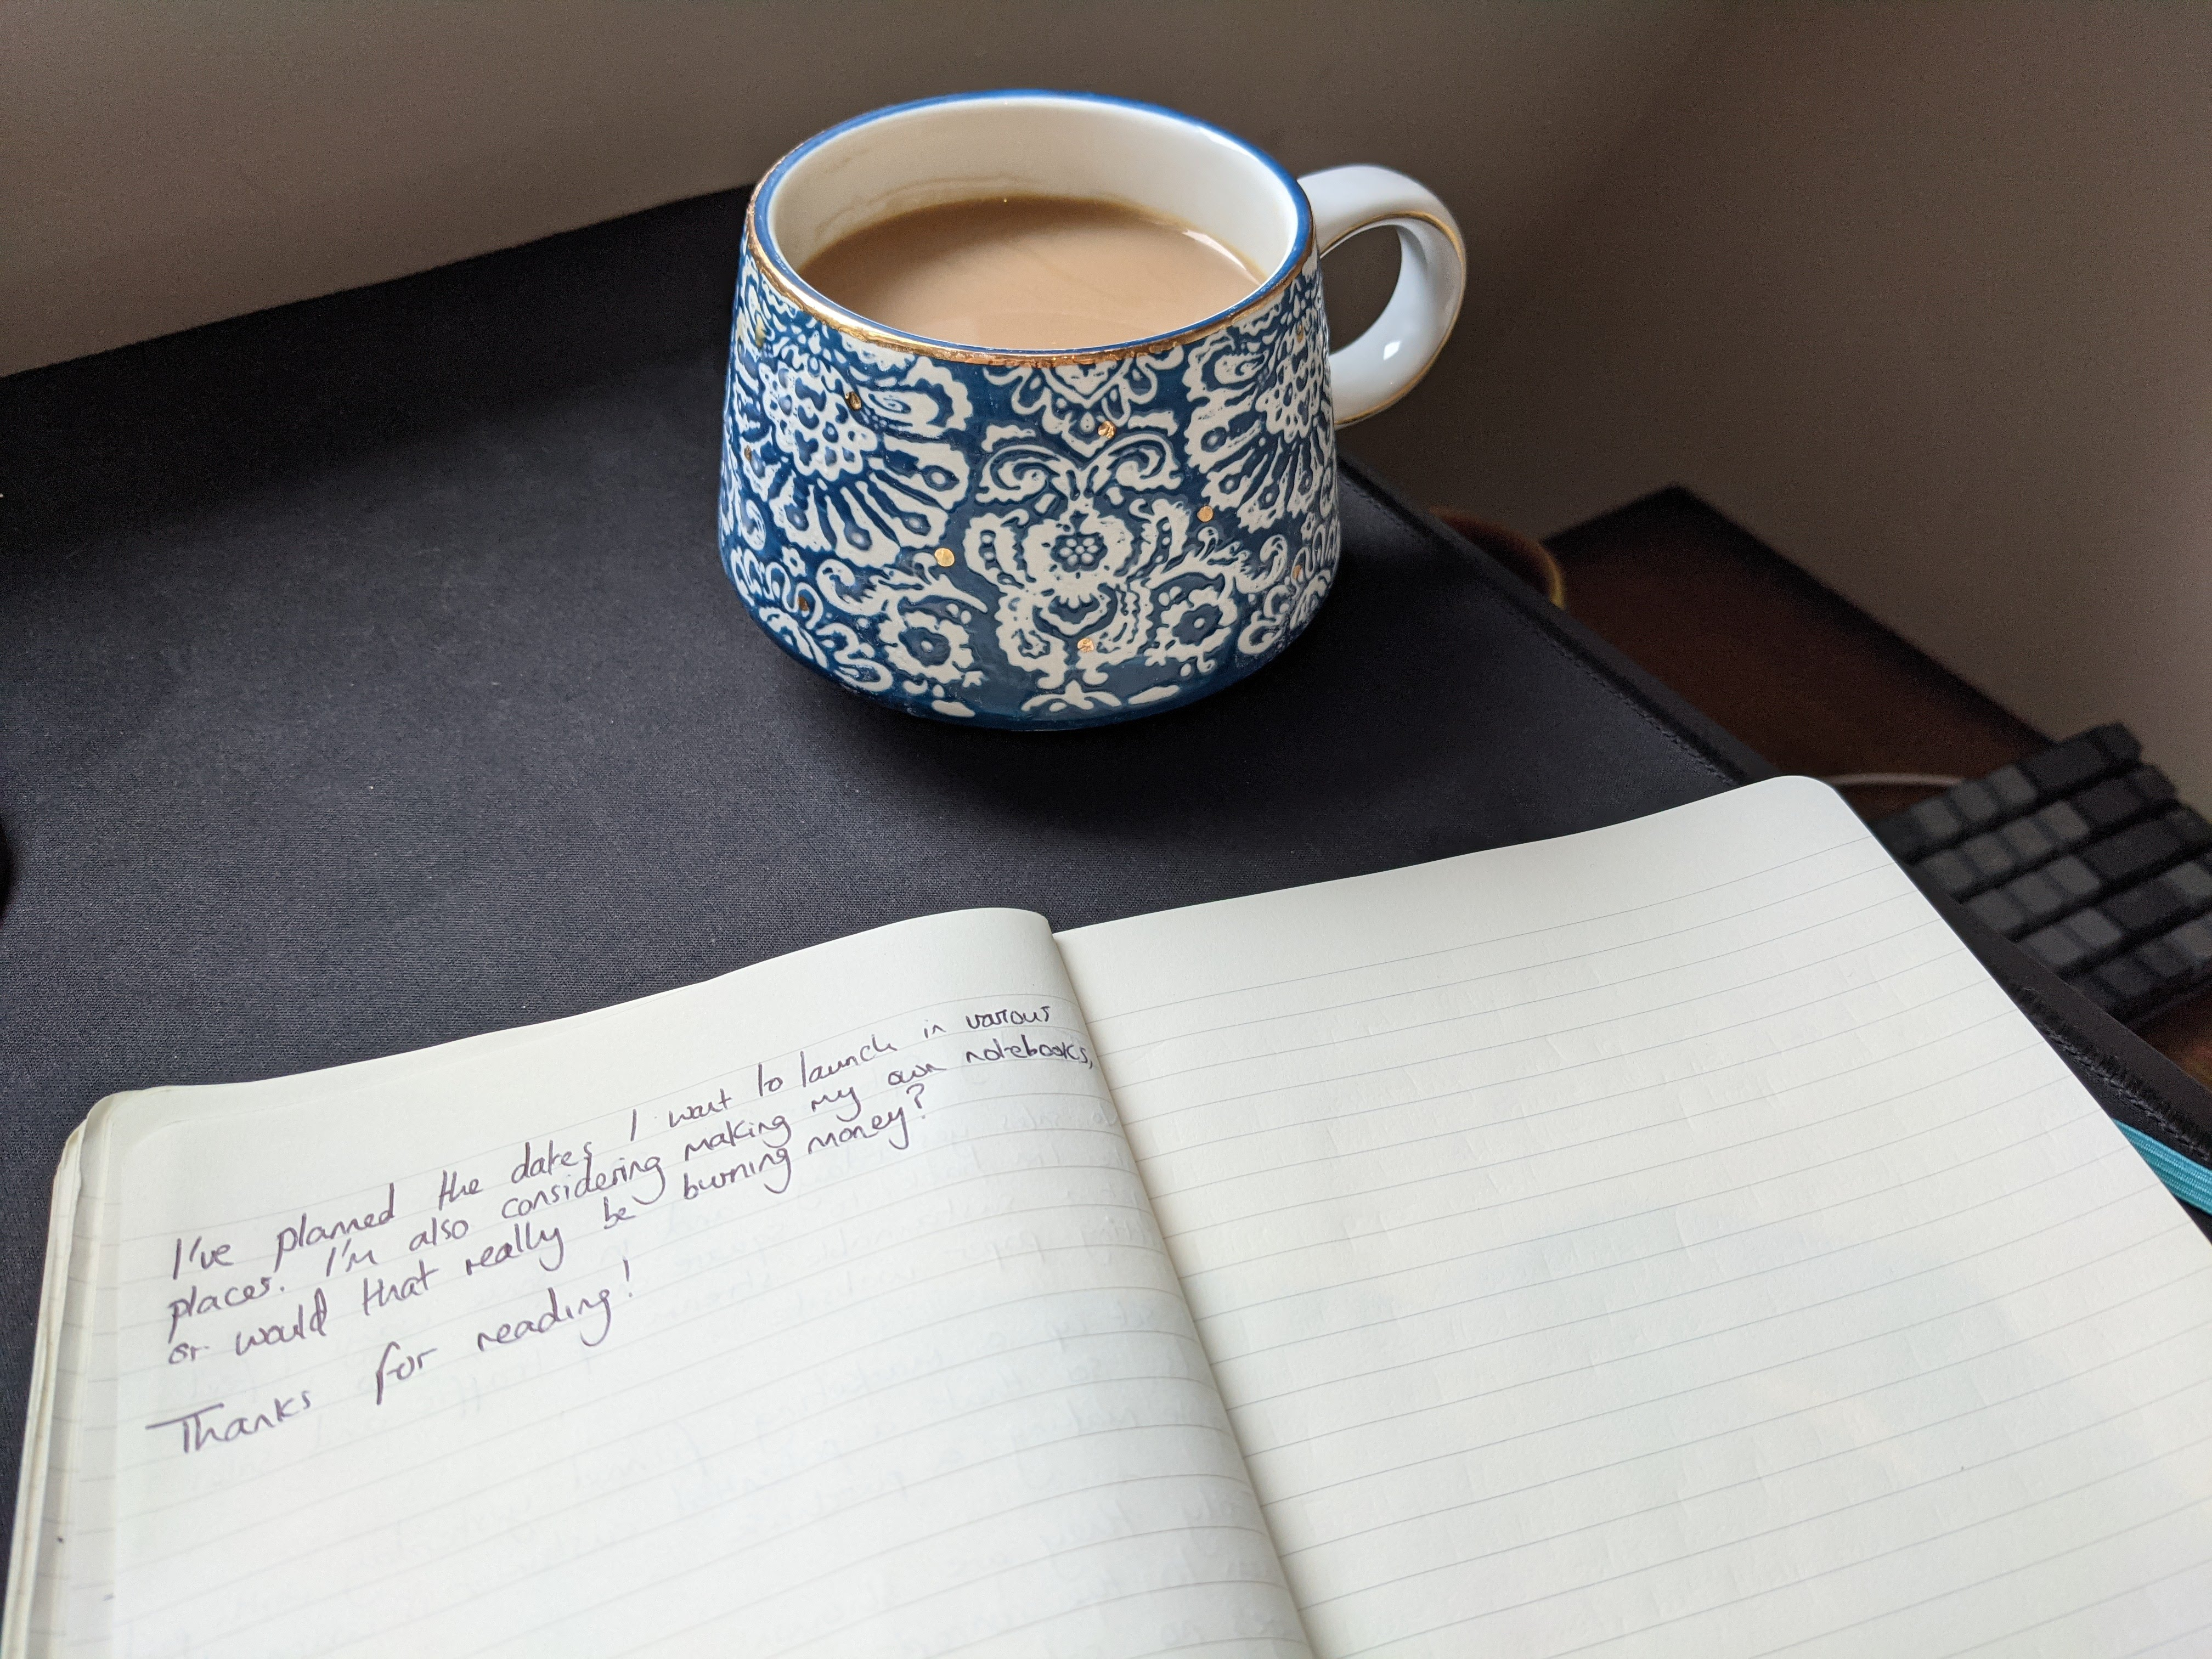 (My writing setup this morning with a nice cup of tea!)